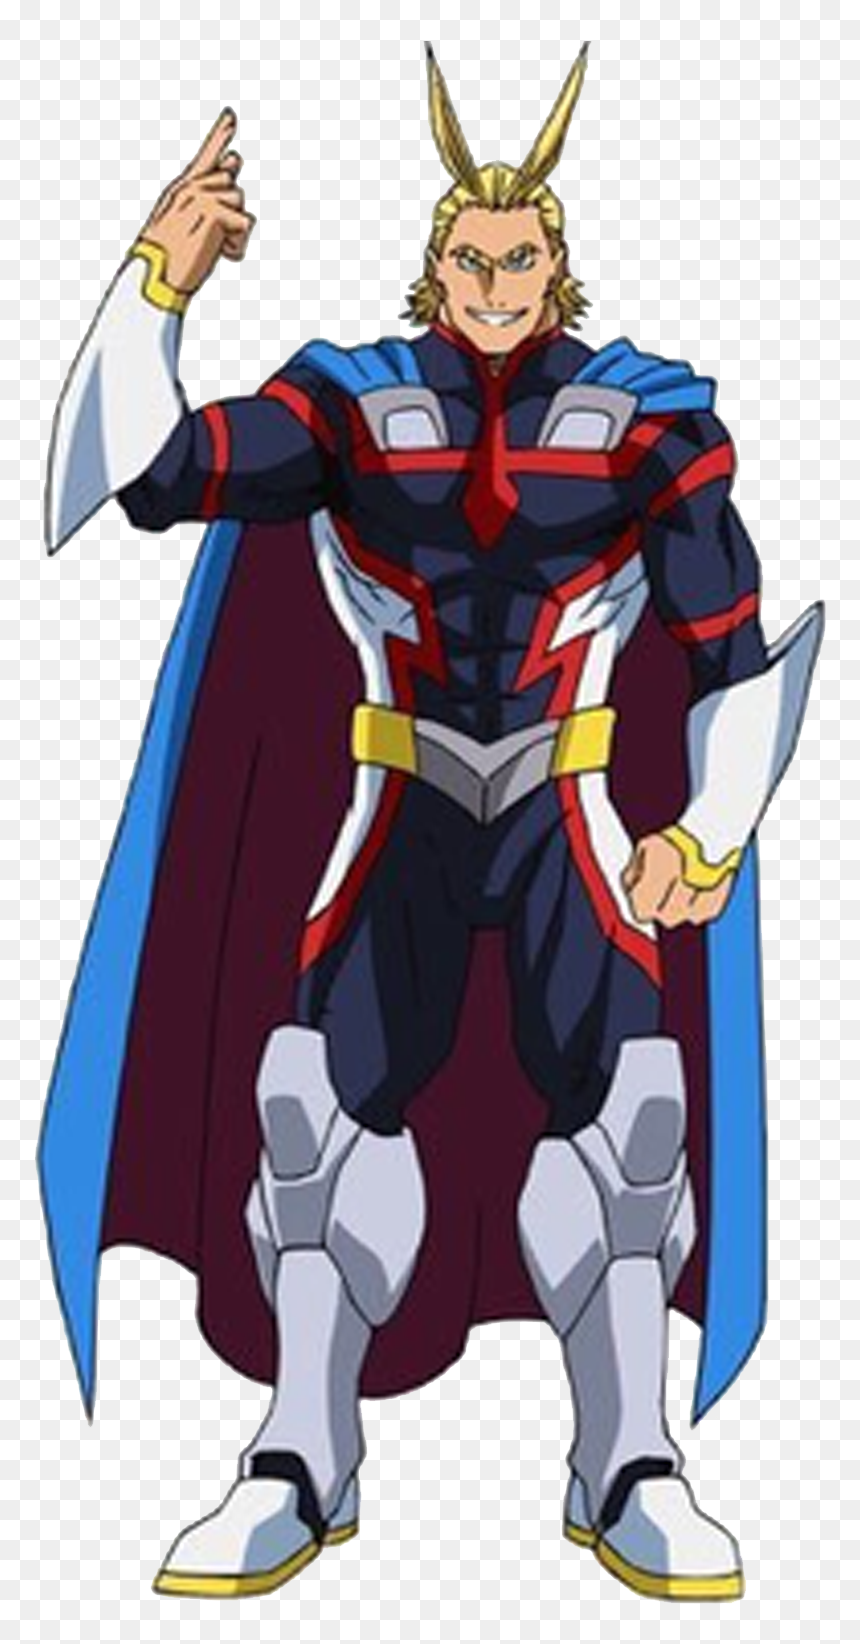 Young All Might My Hero Academia, HD Png Download